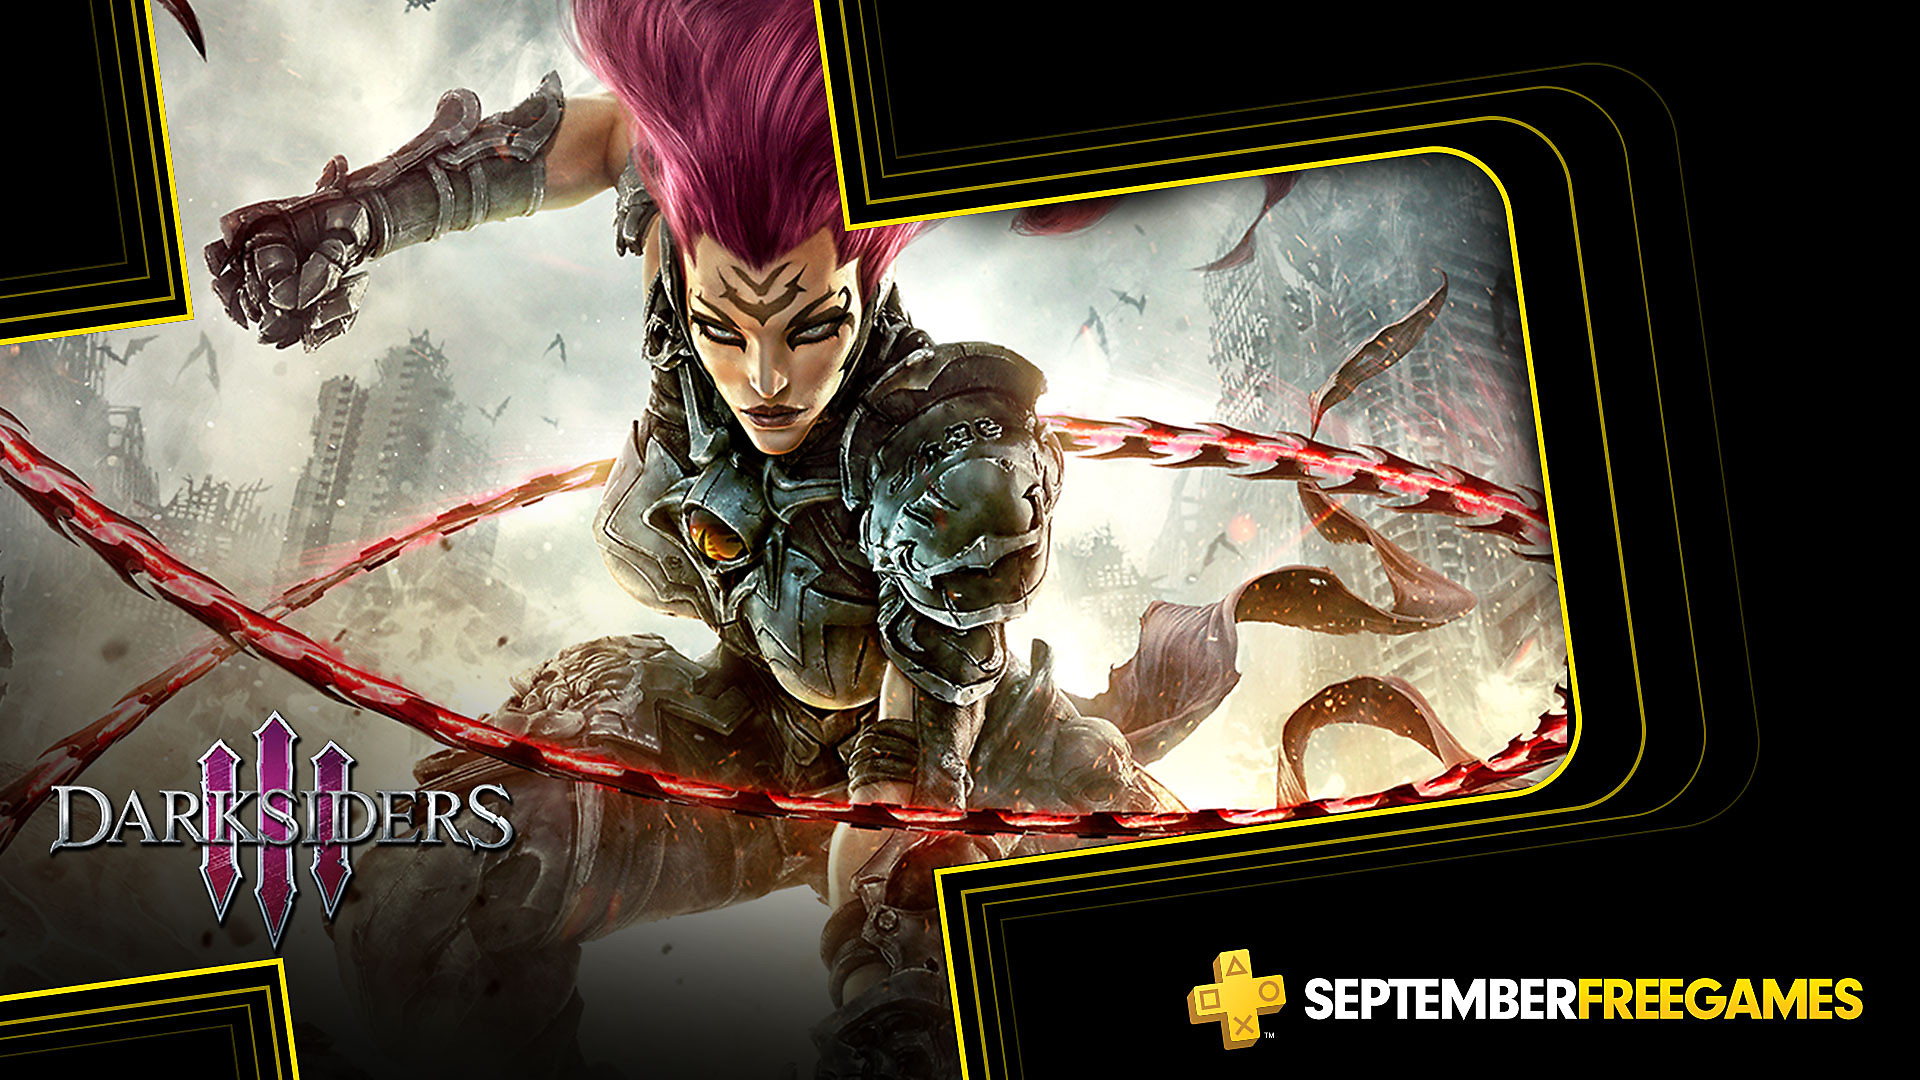 Click here to get Darksiders 3 free from the PlayStation Store for PlayStation Plus members